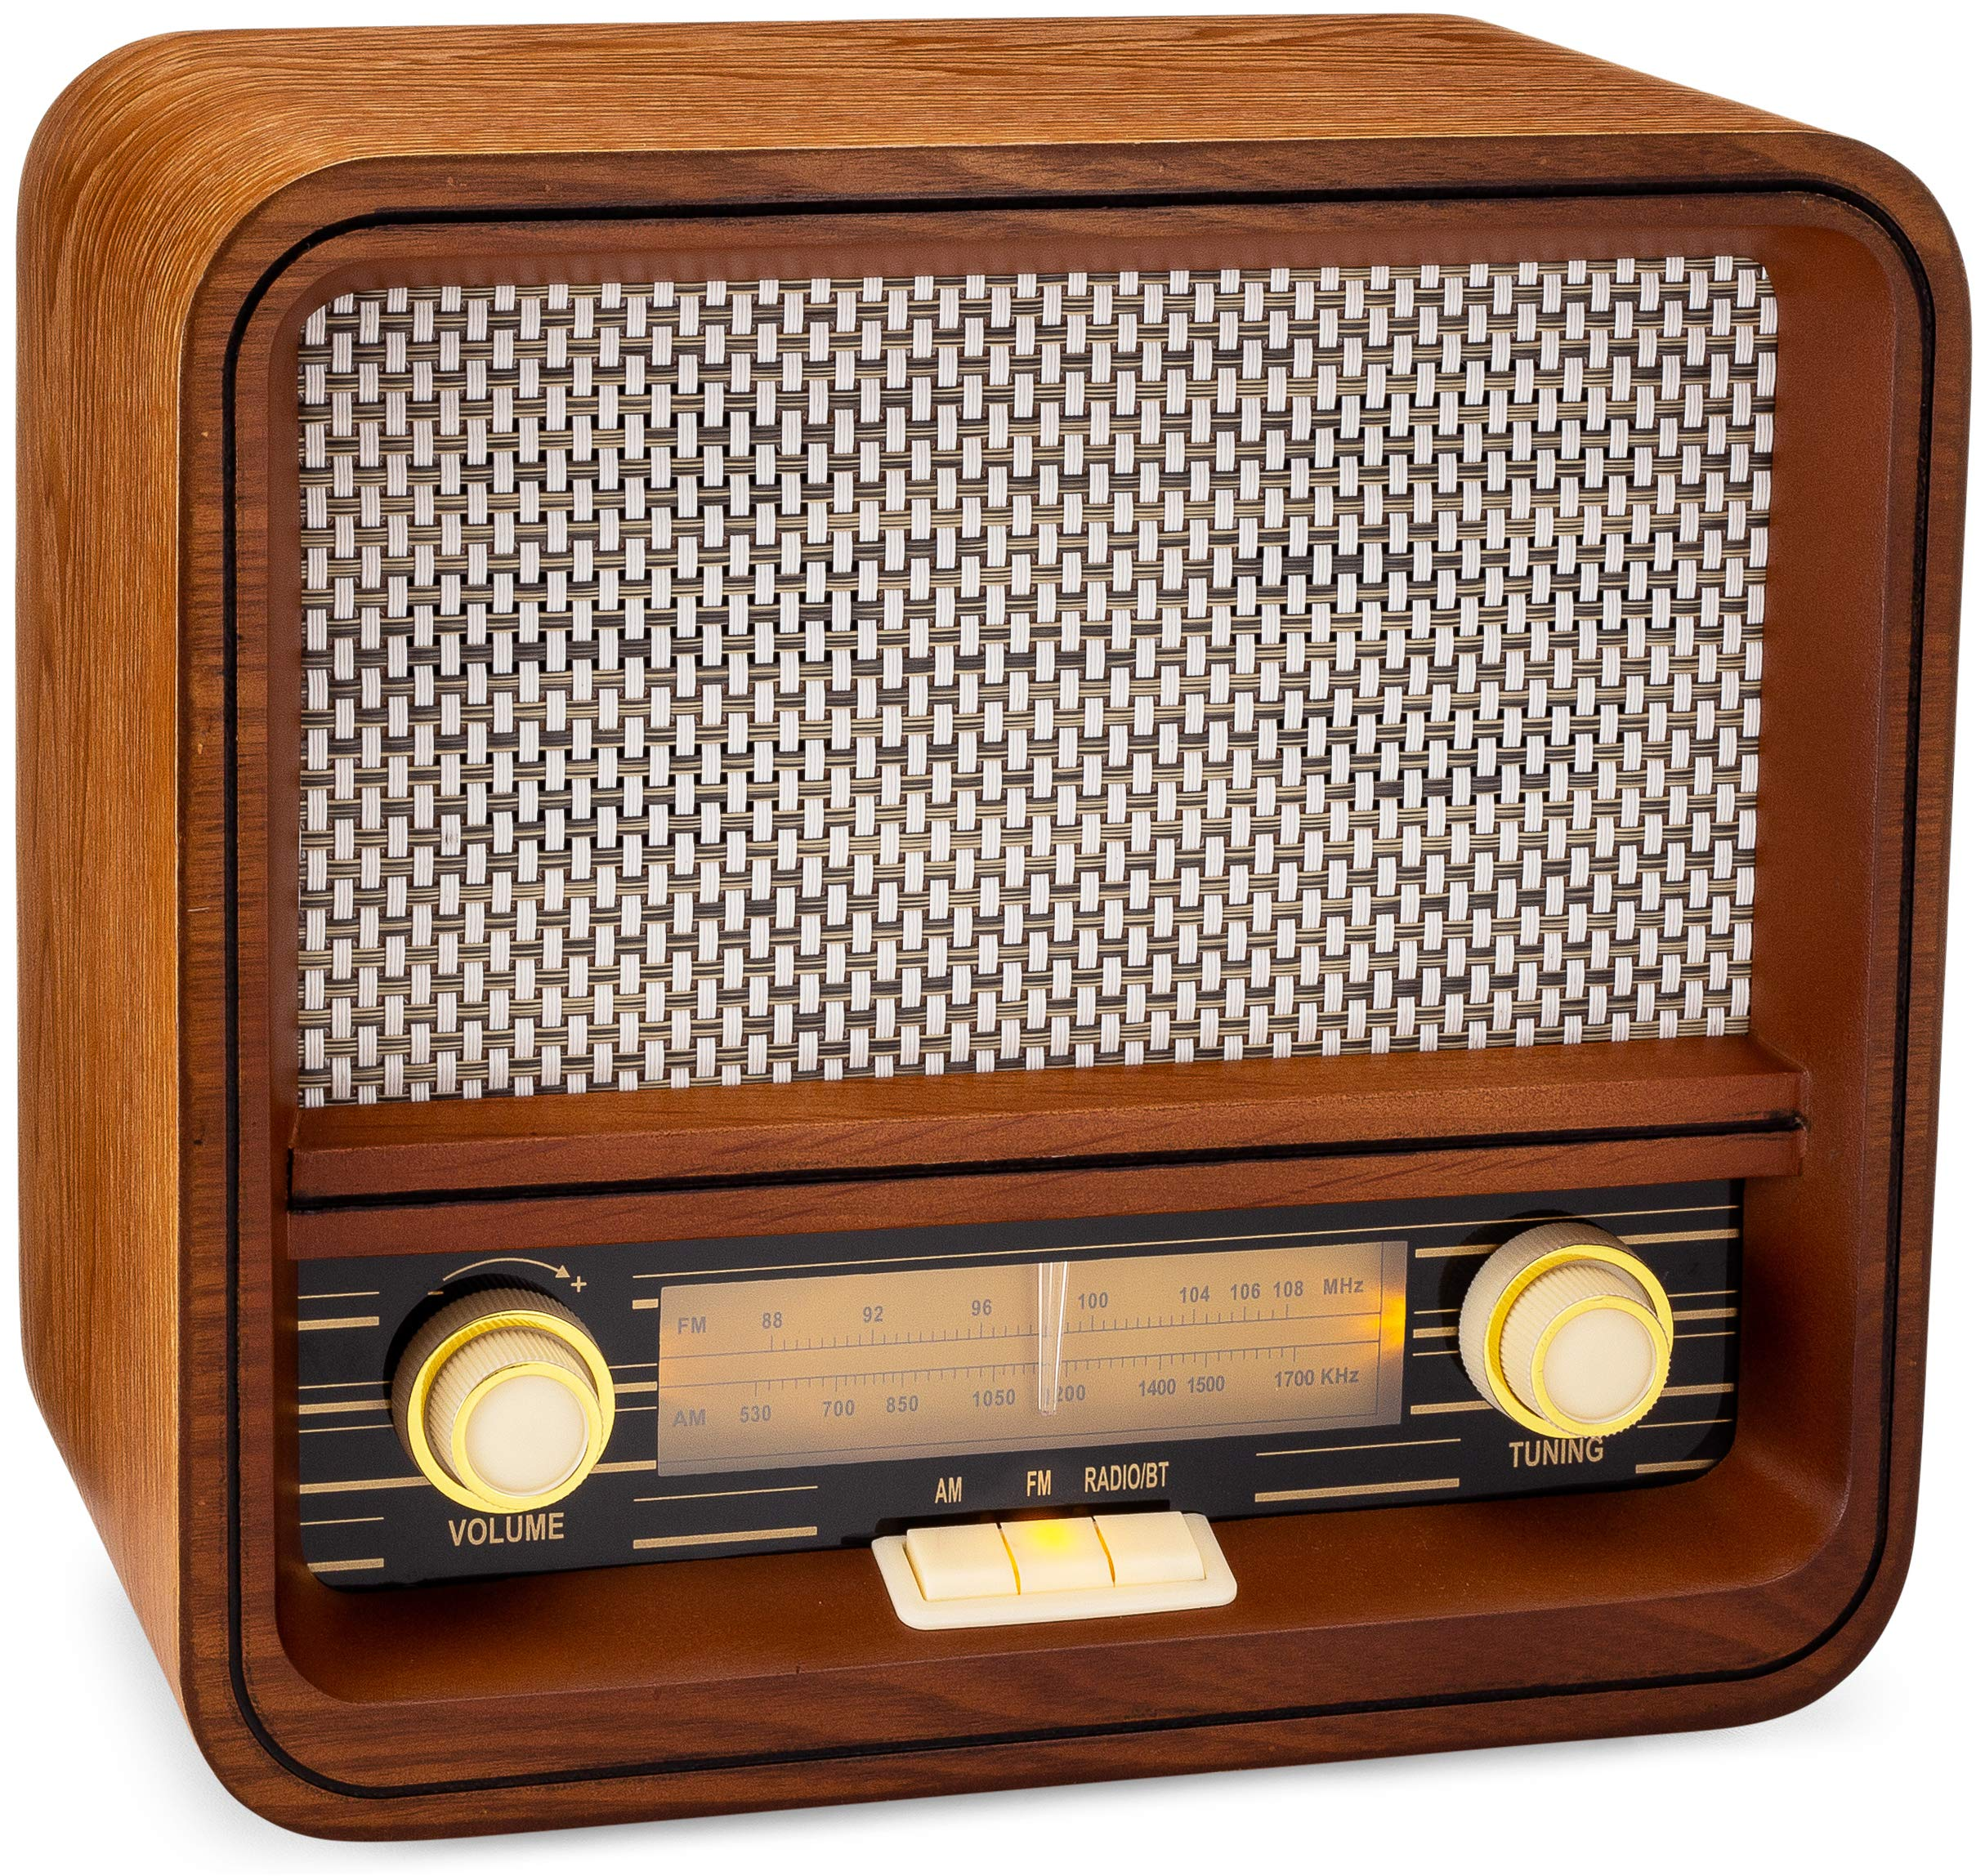 ClearClick Classic Vintage Retro Style AM/FM Radio Bluetooth & Aux-in - Handmade Wooden Exterior by ClearClick